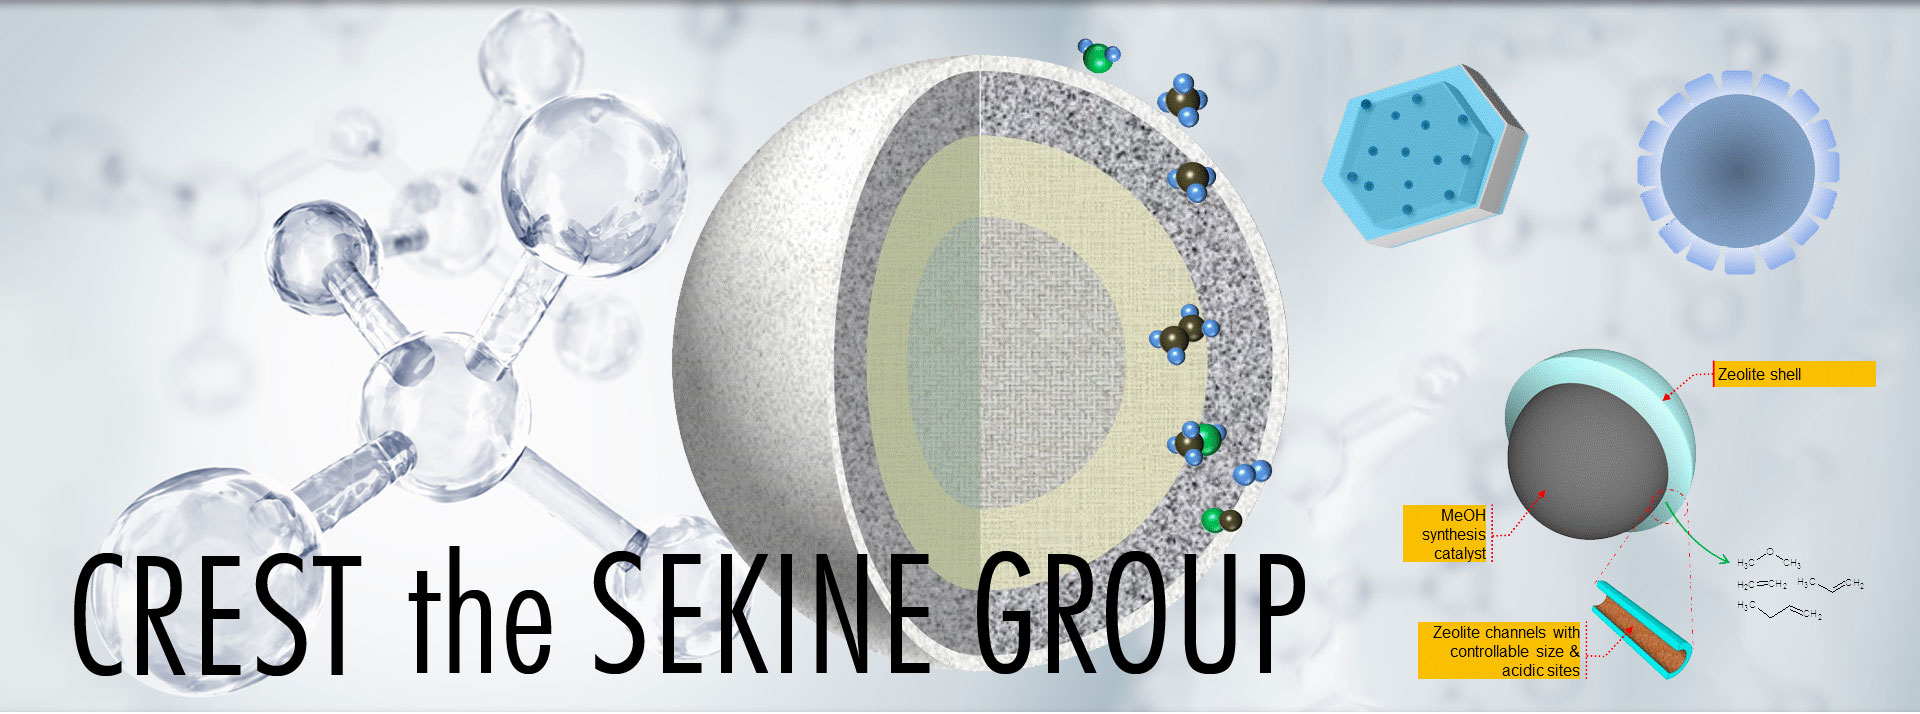 CREST the SEKINE group